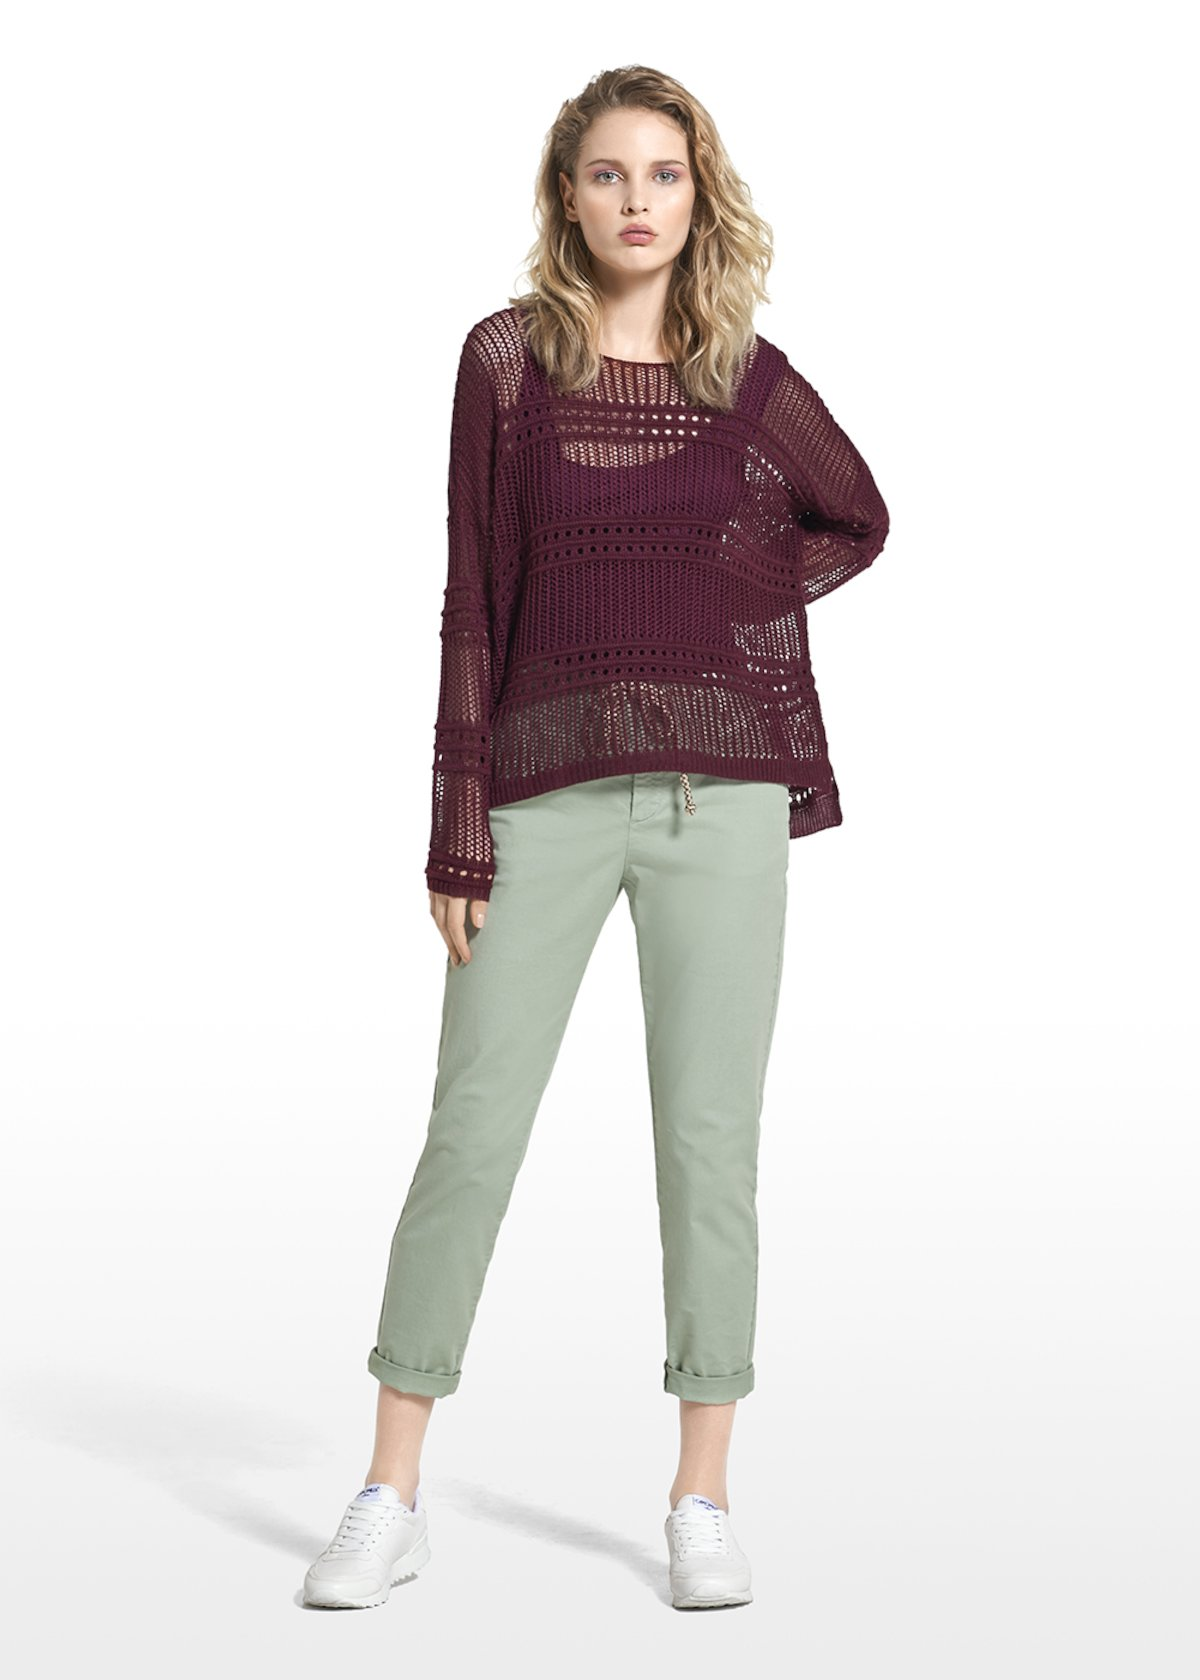 Pants Pixy with rope detail - Alga - Woman - Category image